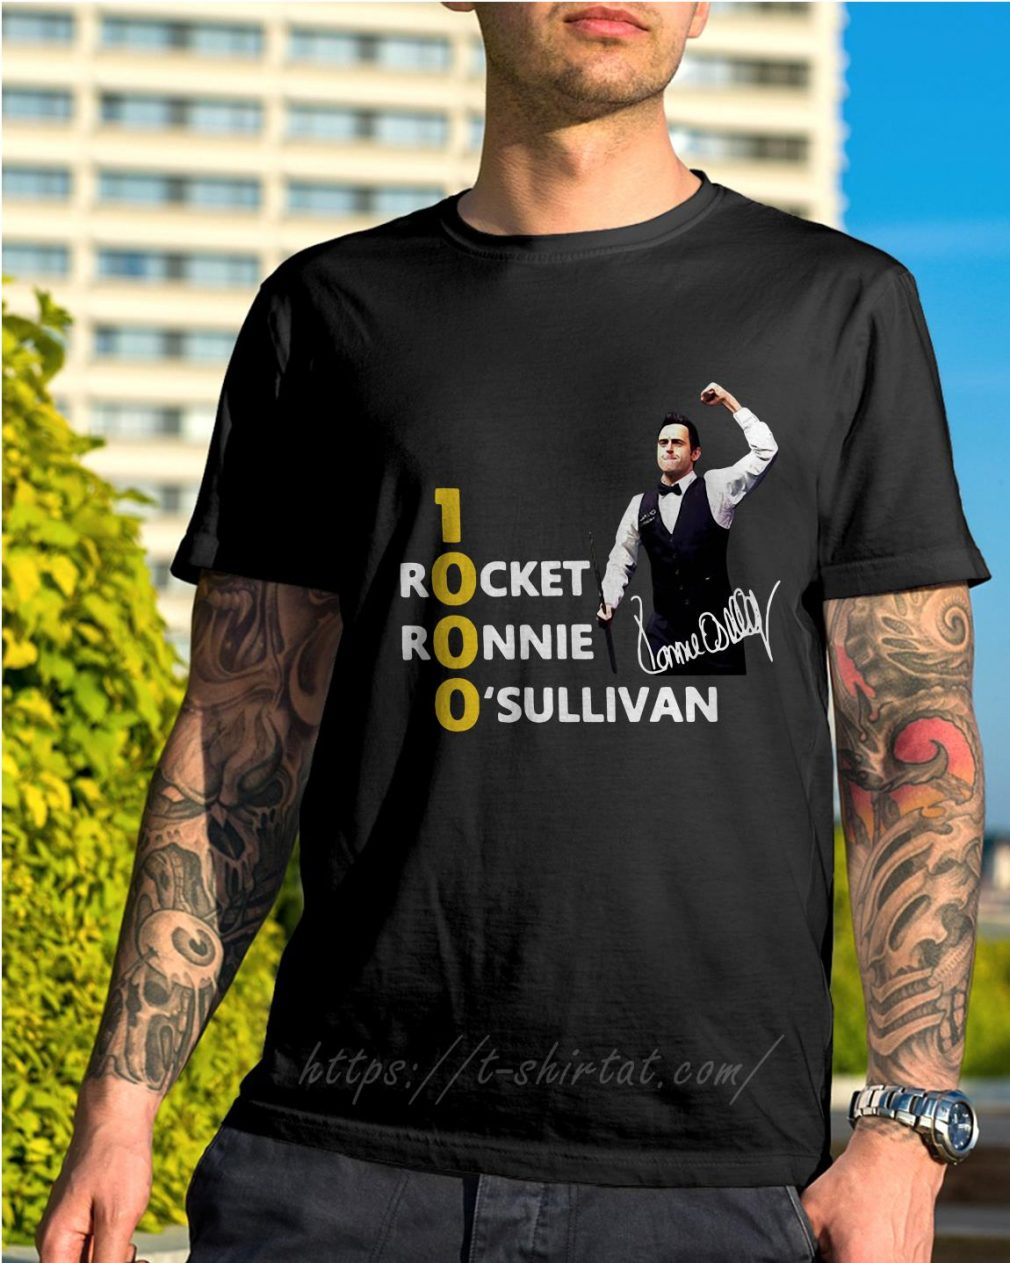 Official 1000 Rocket Ronnie O'Sullivan shirt